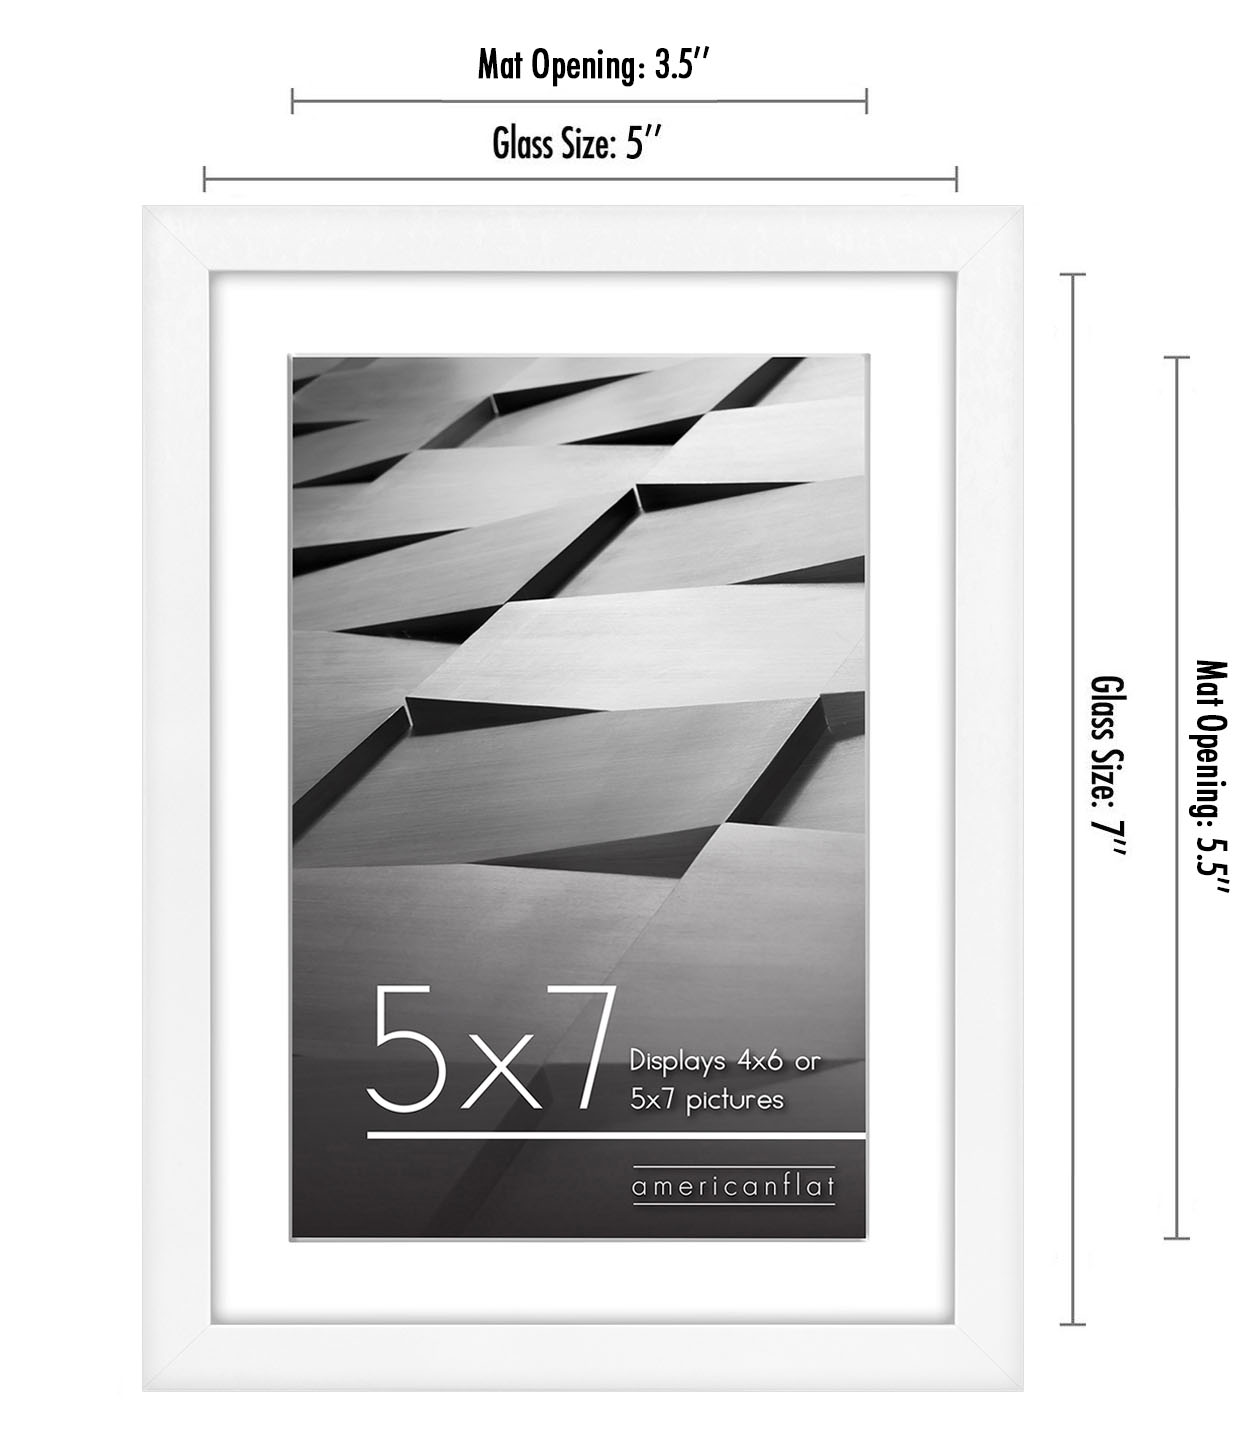 miniature 87 - Americanflat Thin Picture Frame 5x7 8x10 11x14 8.5x11 Wall Tabletop Pick Color